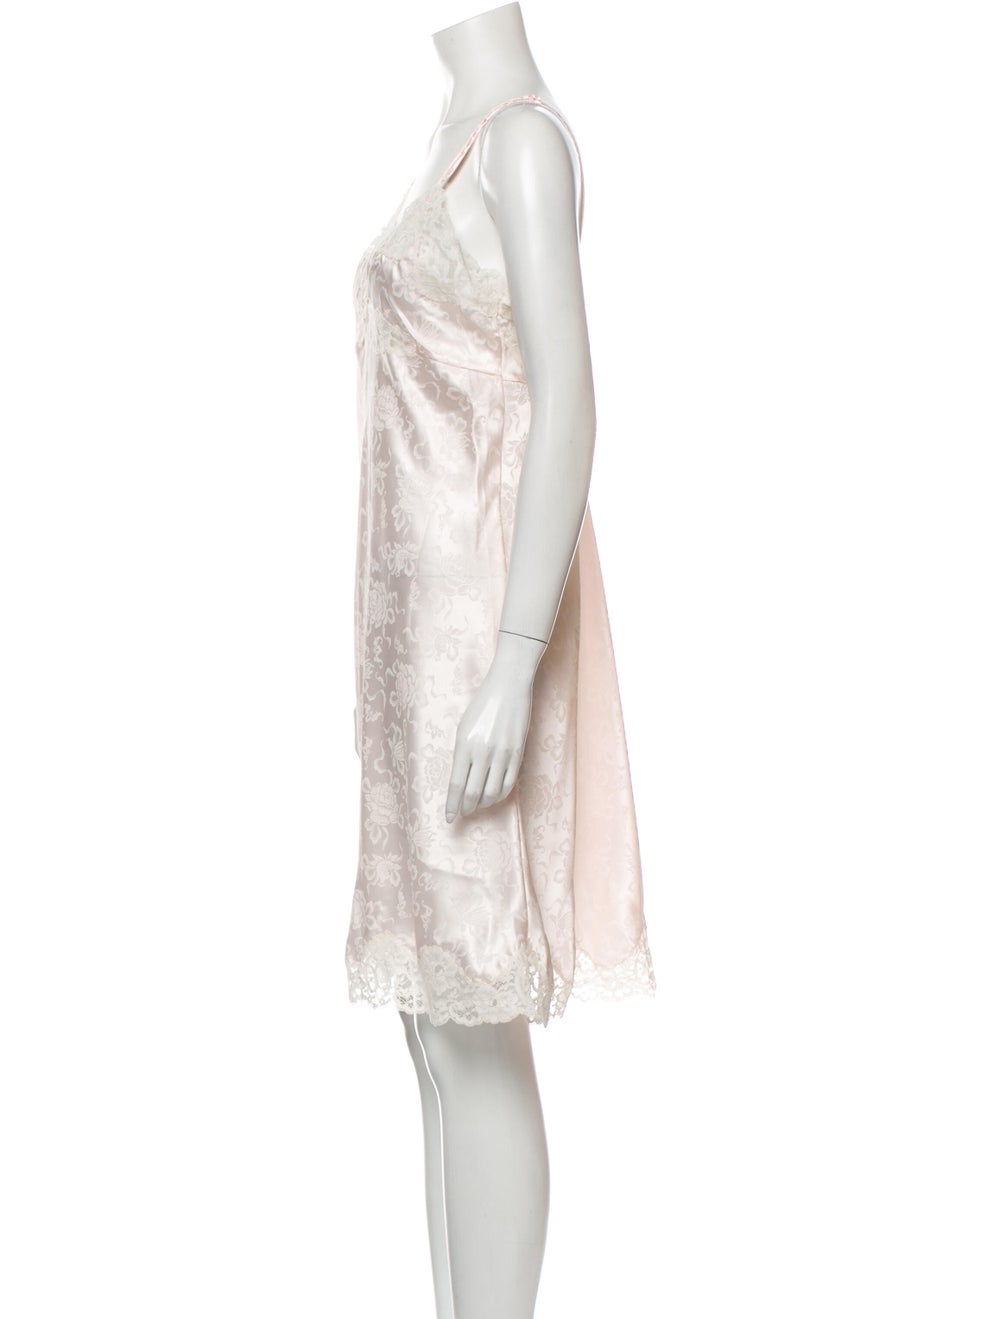 Christian Dior Vintage Floral Print Nightgown Pink - image 2